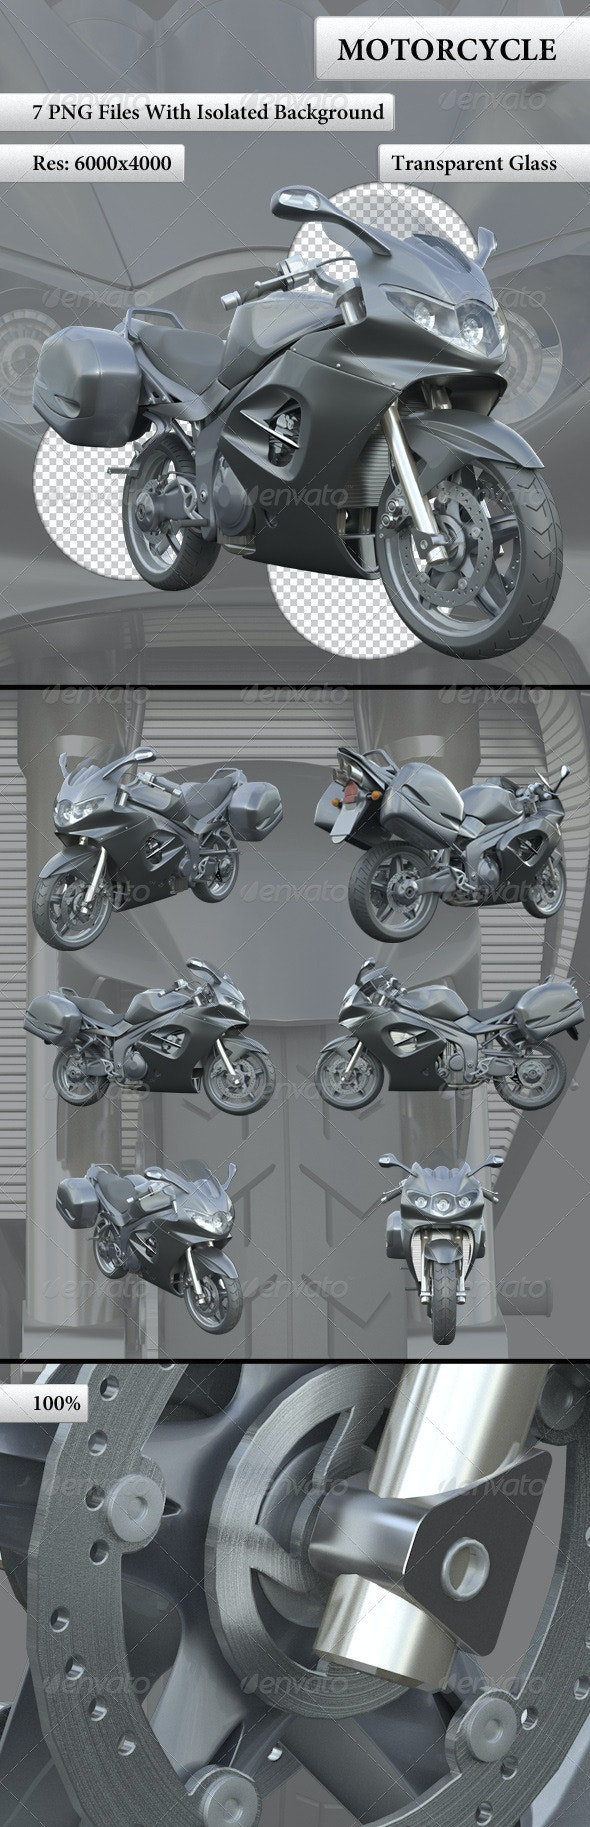 Motorcycle - Objects 3D Renders